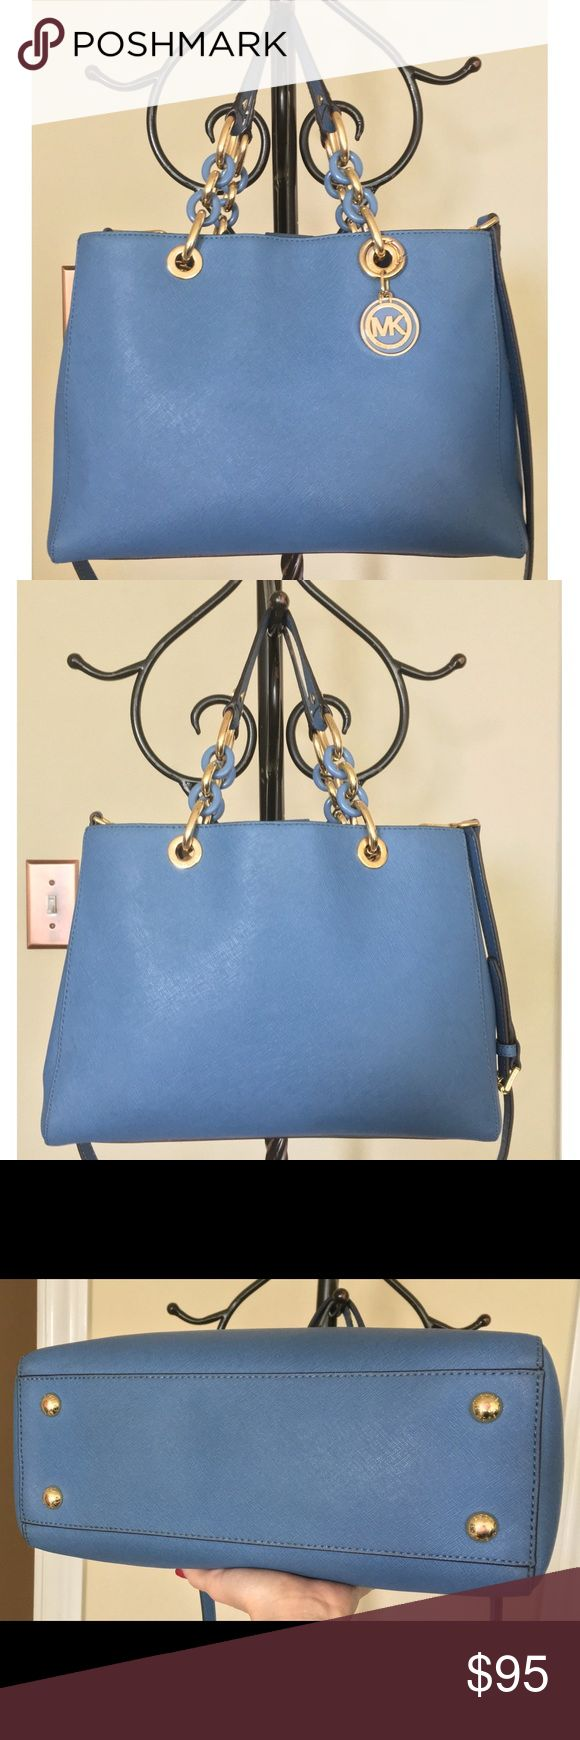 """Michael Kors Blue Saffiano Leather Satchel 💙 Gorgeous Michael Kors Blue Saffiano Leather Satchel in EXCELLENT CONDITION 💋. This beautiful bag will elevate your wardrobe and always make you feel beautiful ❤️! Interior features large central zip compartment as well as 4 organizer pockets and 1 zip pocket. Handles drop measures 6.5""""; shoulder strap drop measures 20.5"""". Has a few very minuscule marks on exterior (hardly noticeable) and slight wear on strap (pictured). Nonetheless excellent…"""